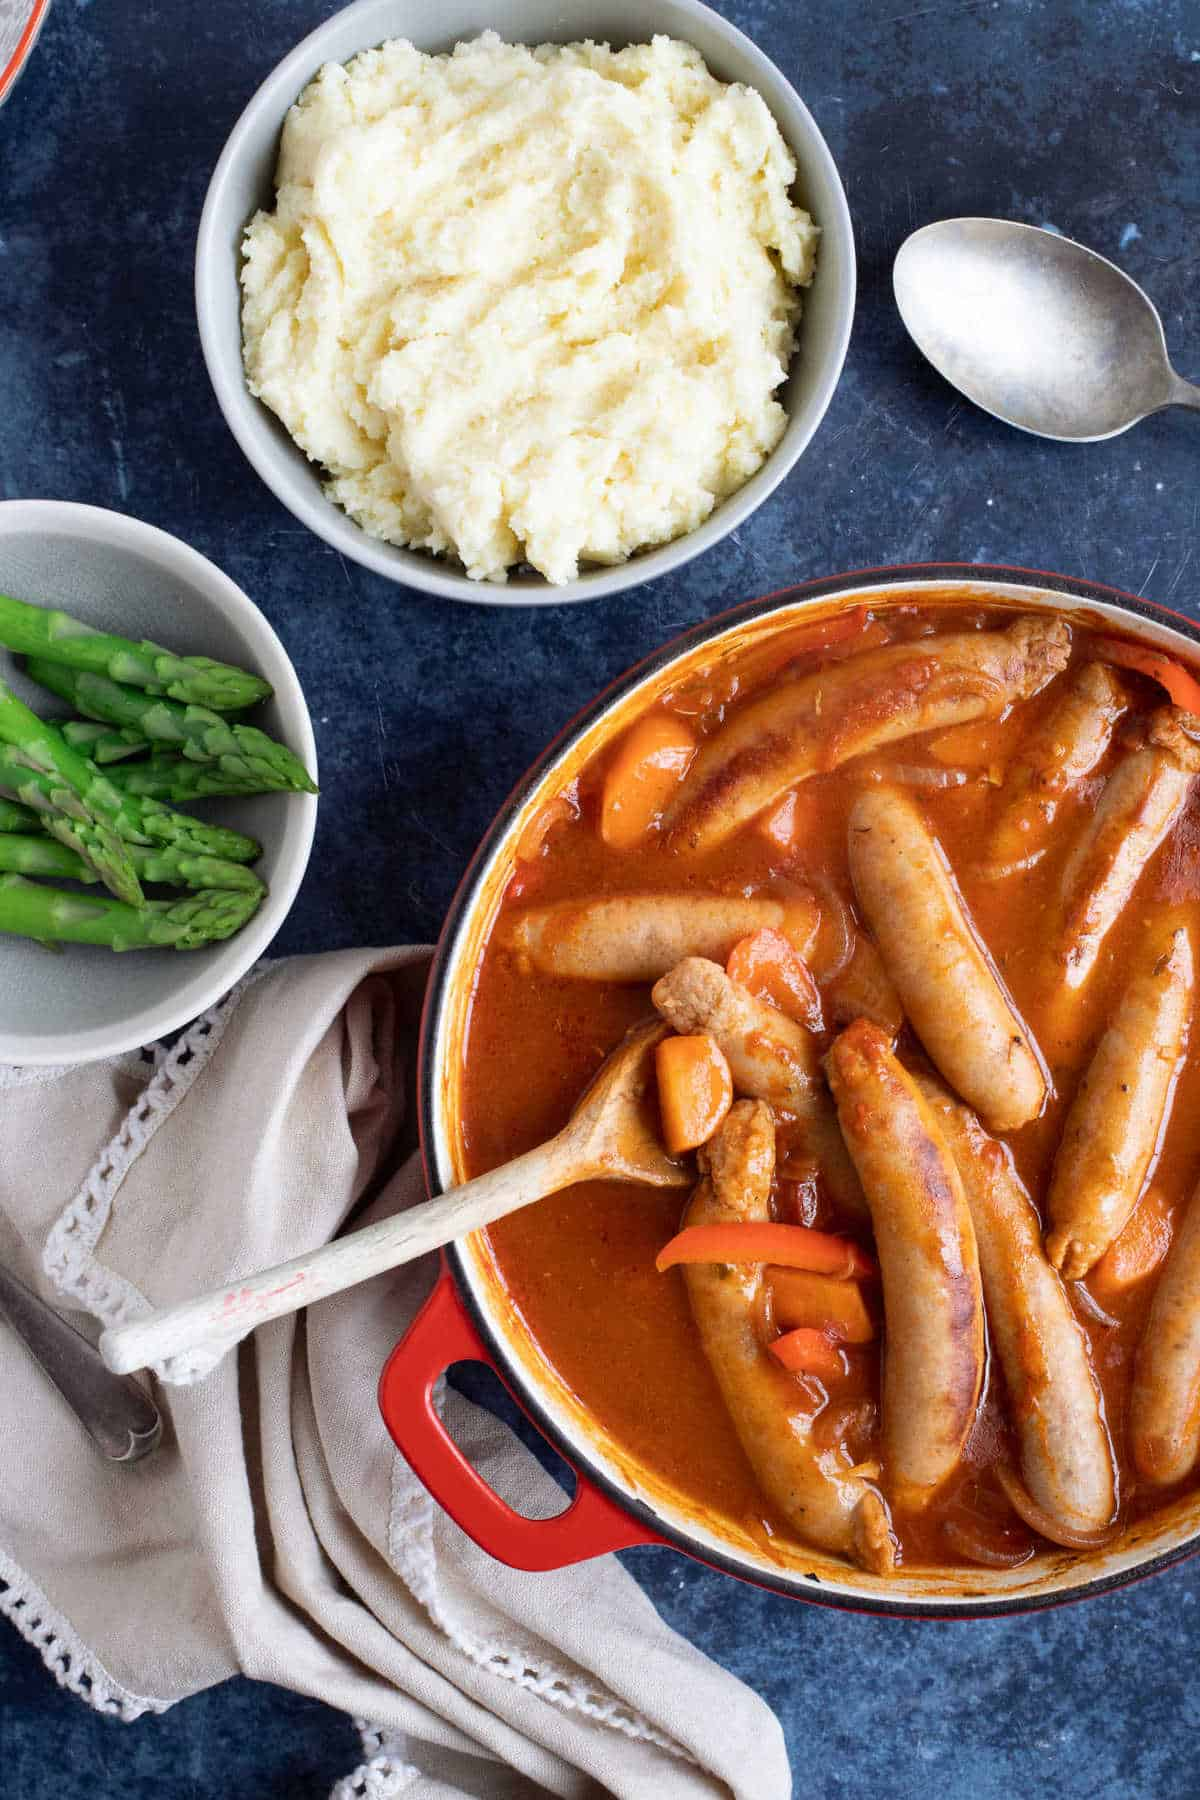 Sausage casserole with mashed potato and asparagus.